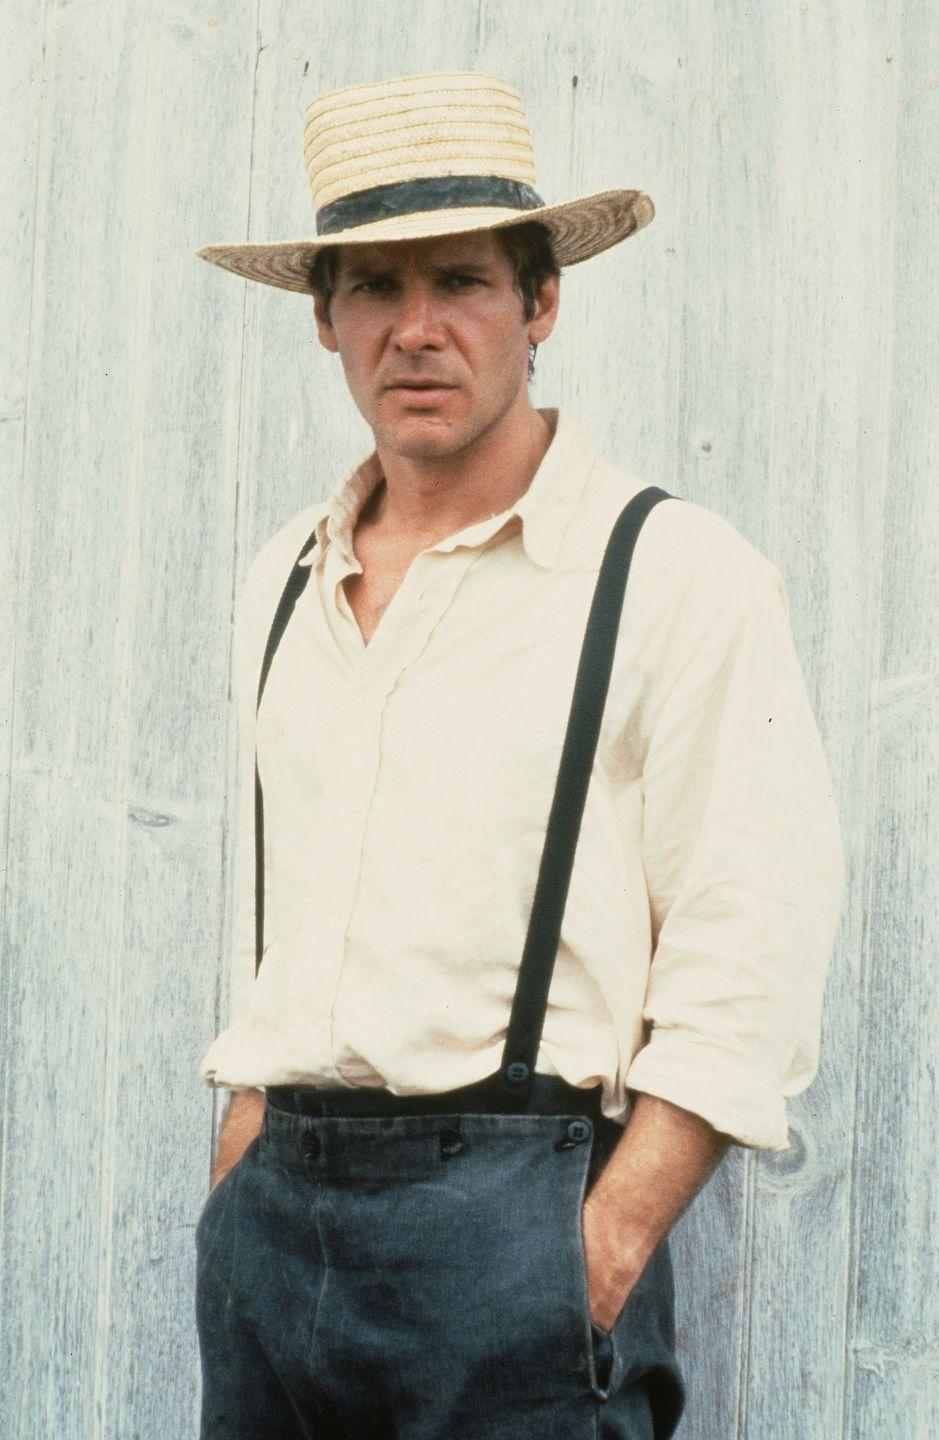 <p>It might be easy to say that Harrison Ford's career peaked in the '80s, considering he starred in two <em>Star Wars </em>movies and three <em>Indiana Jones</em> films in less than 10 years. But that's not all he's accomplished in his lifetime.</p>